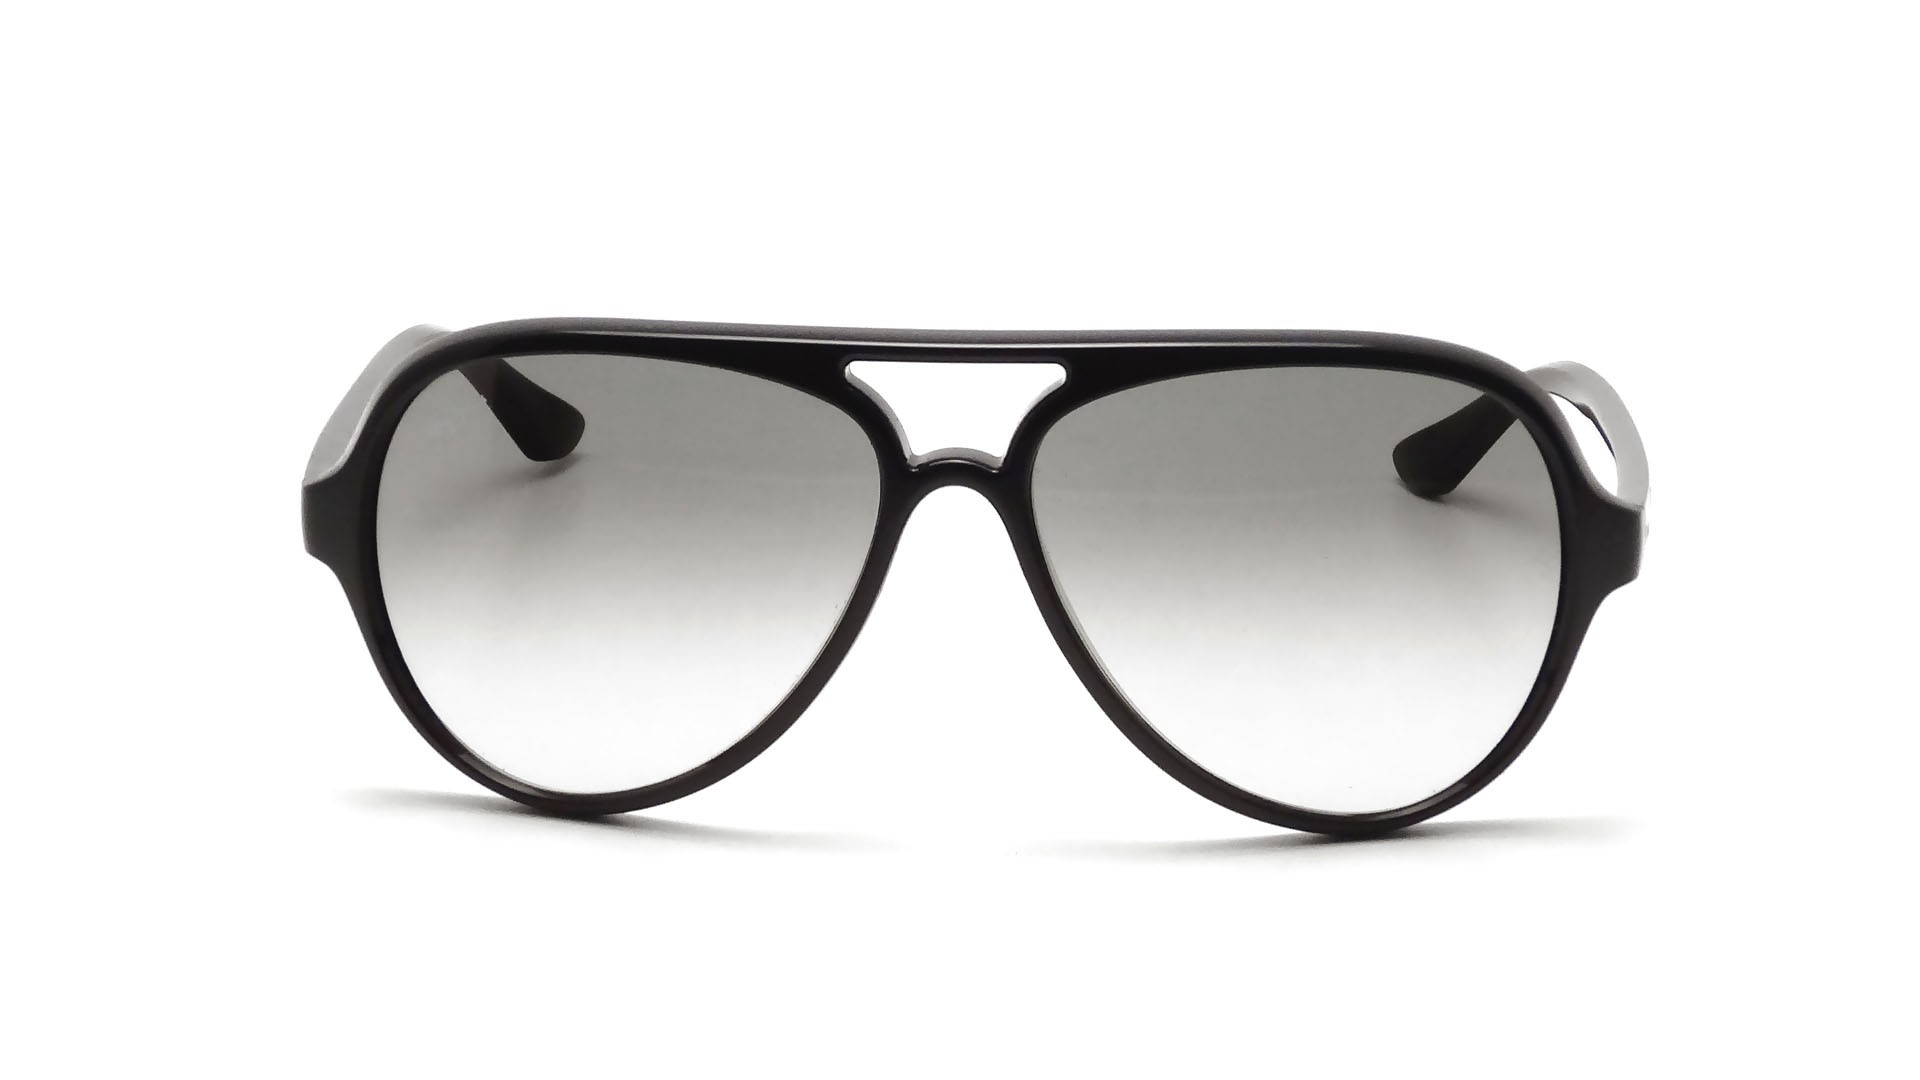 92a4f7c52a6 Ray-Ban Cats 5000 Black RB4125 601 32 59-14